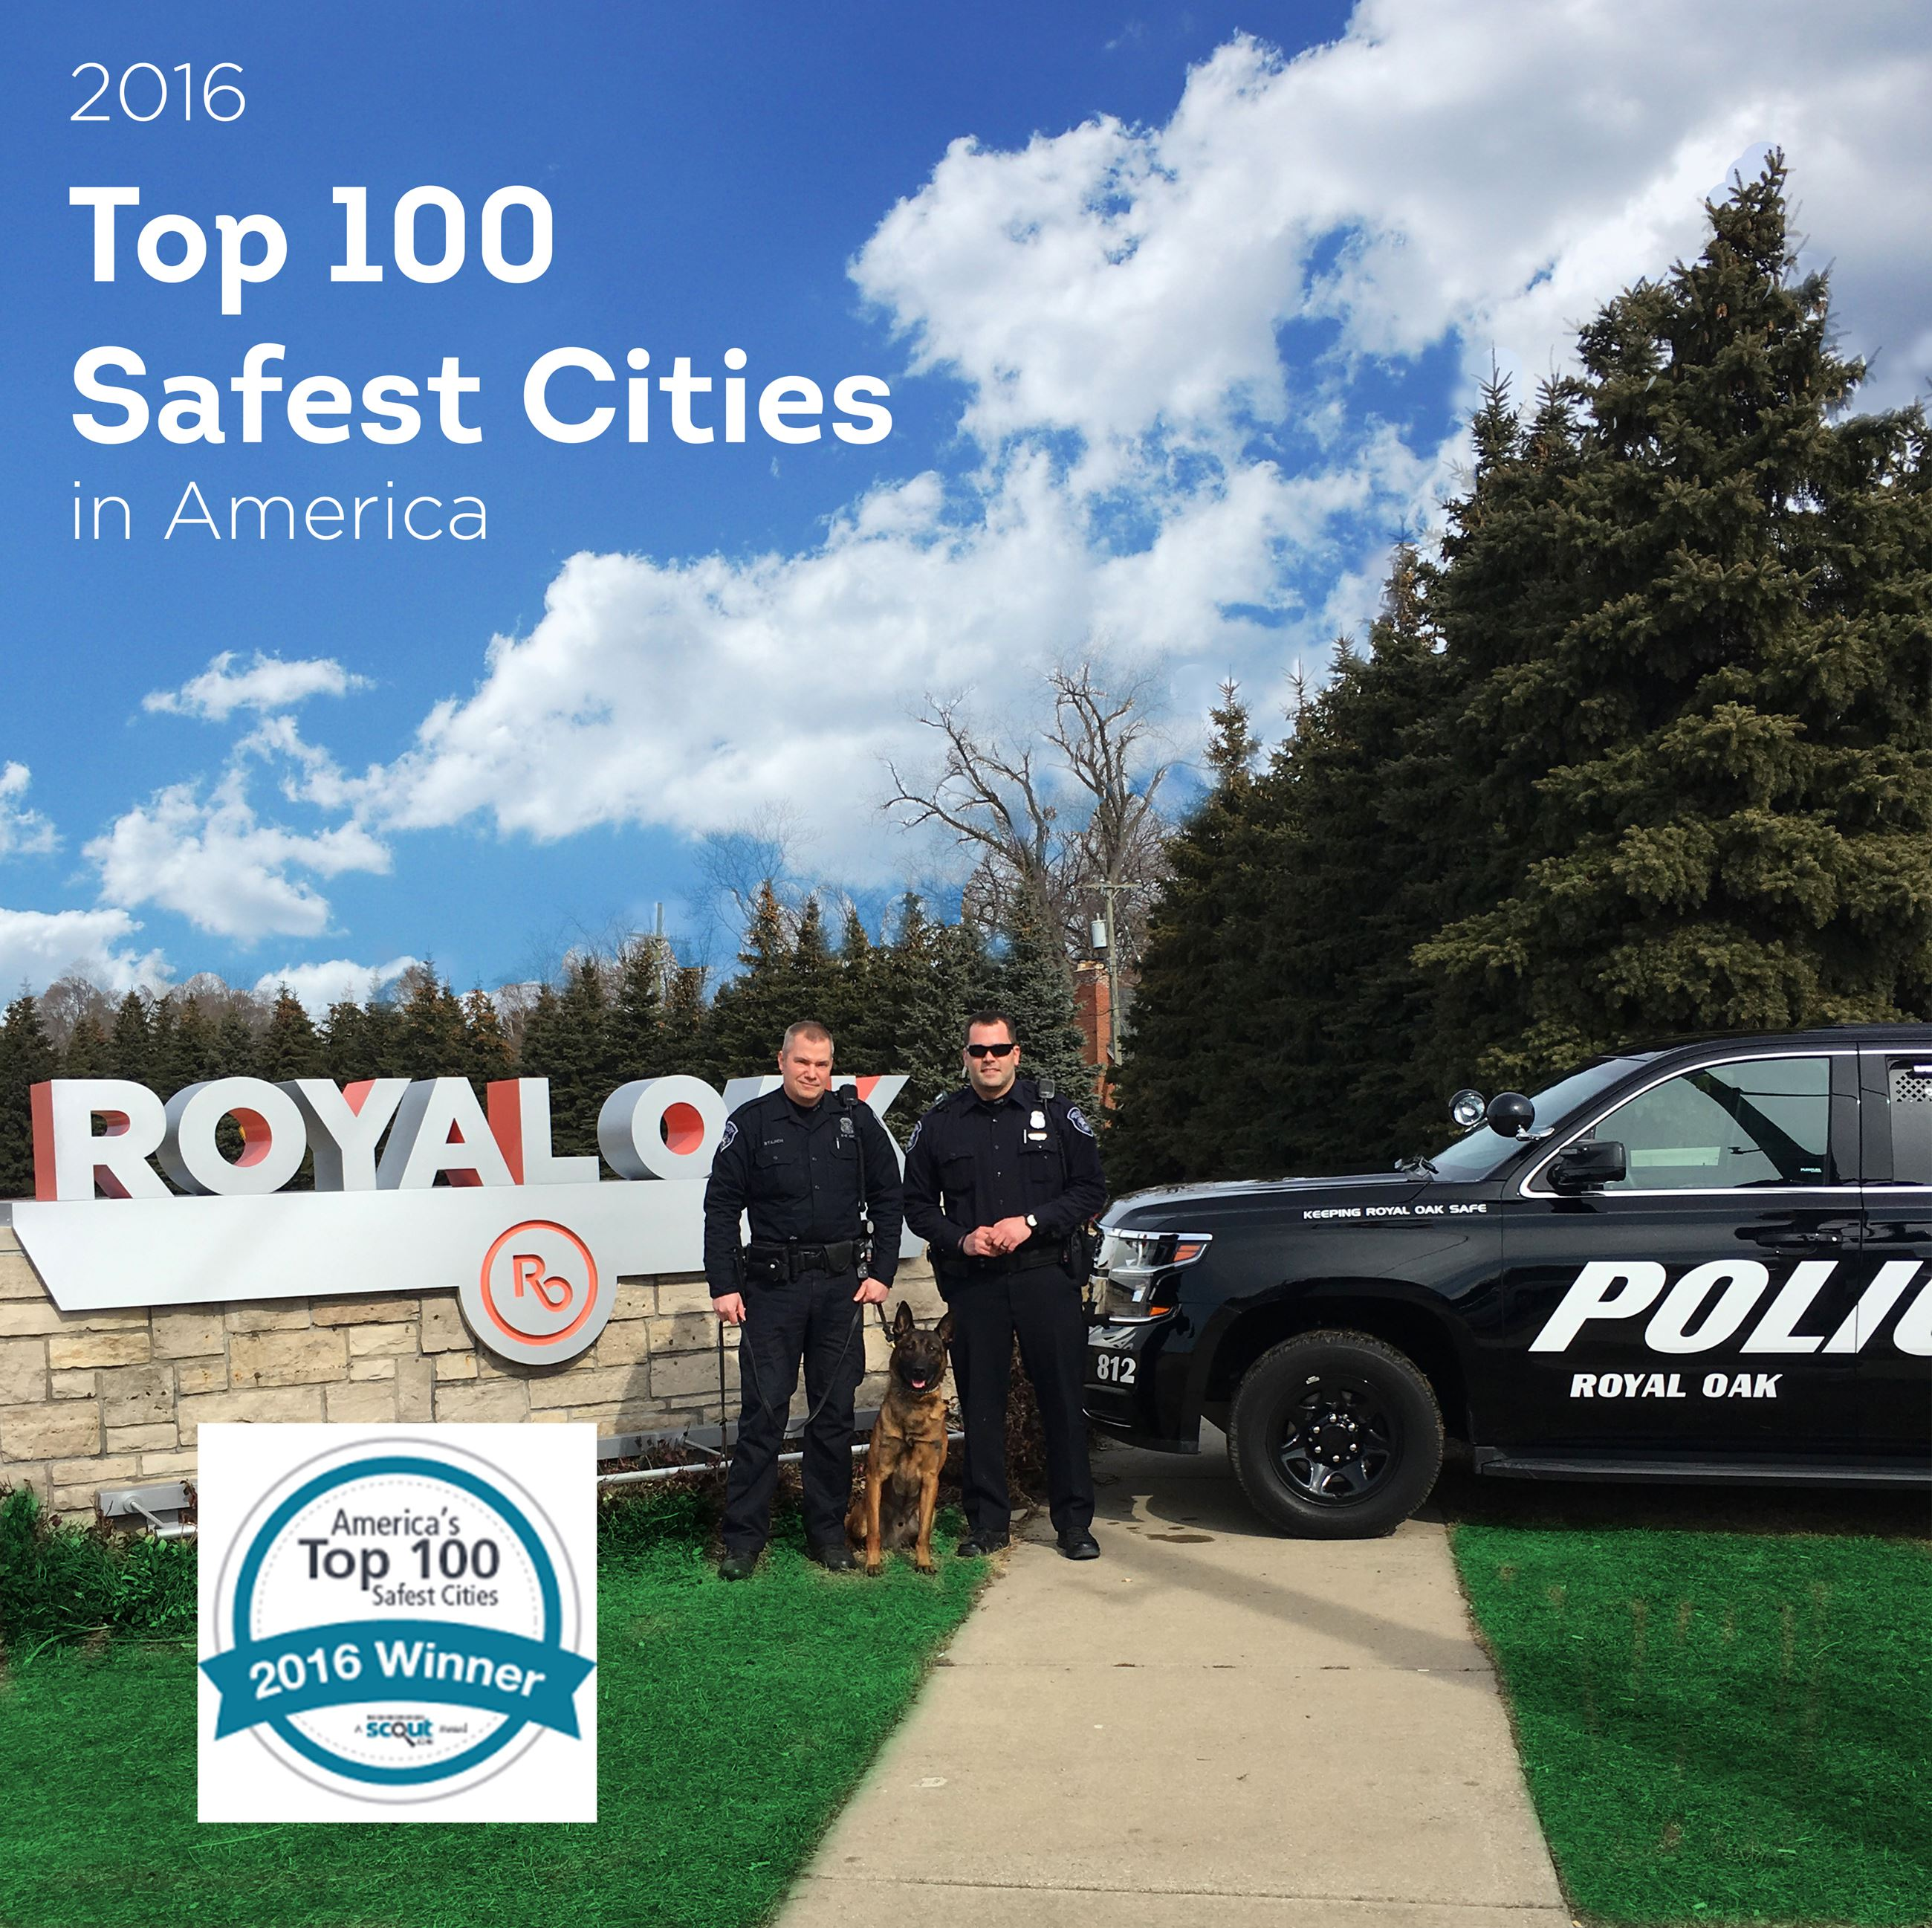 Top 100 Safest Cities in America